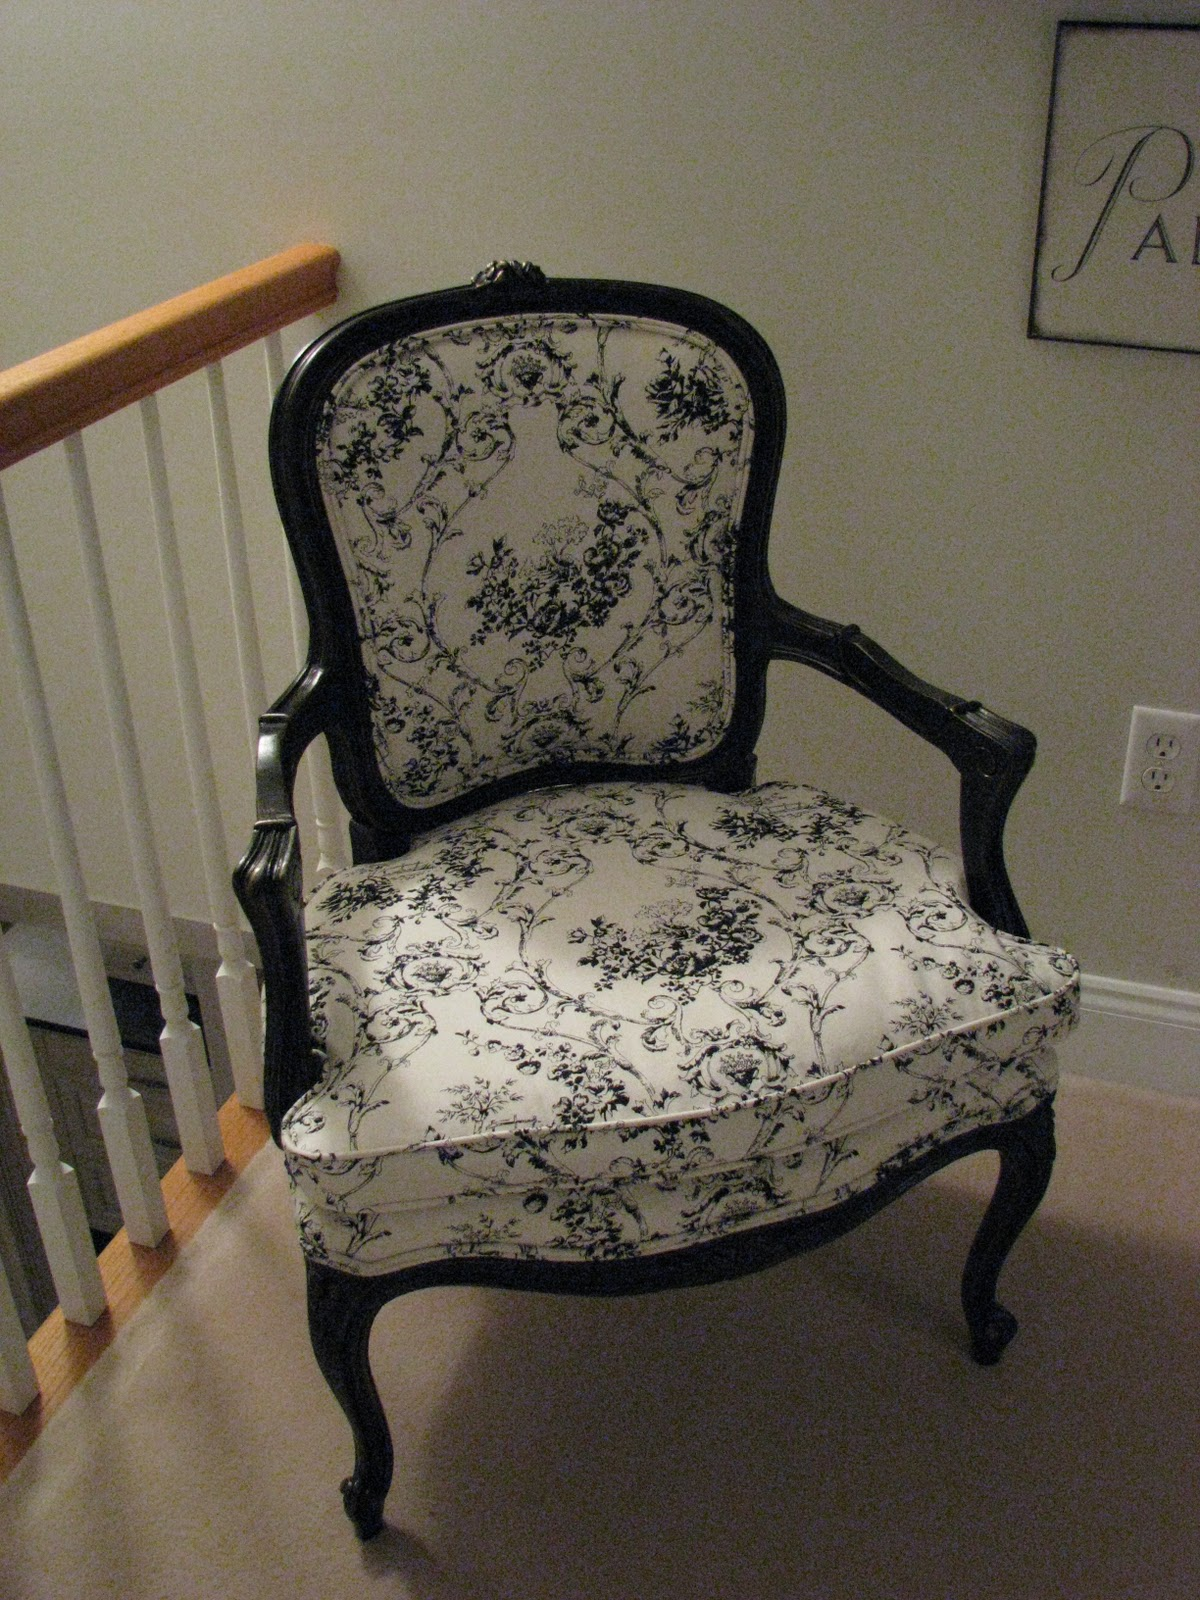 Below are pictures of my chairs that were refinished by Andrea!